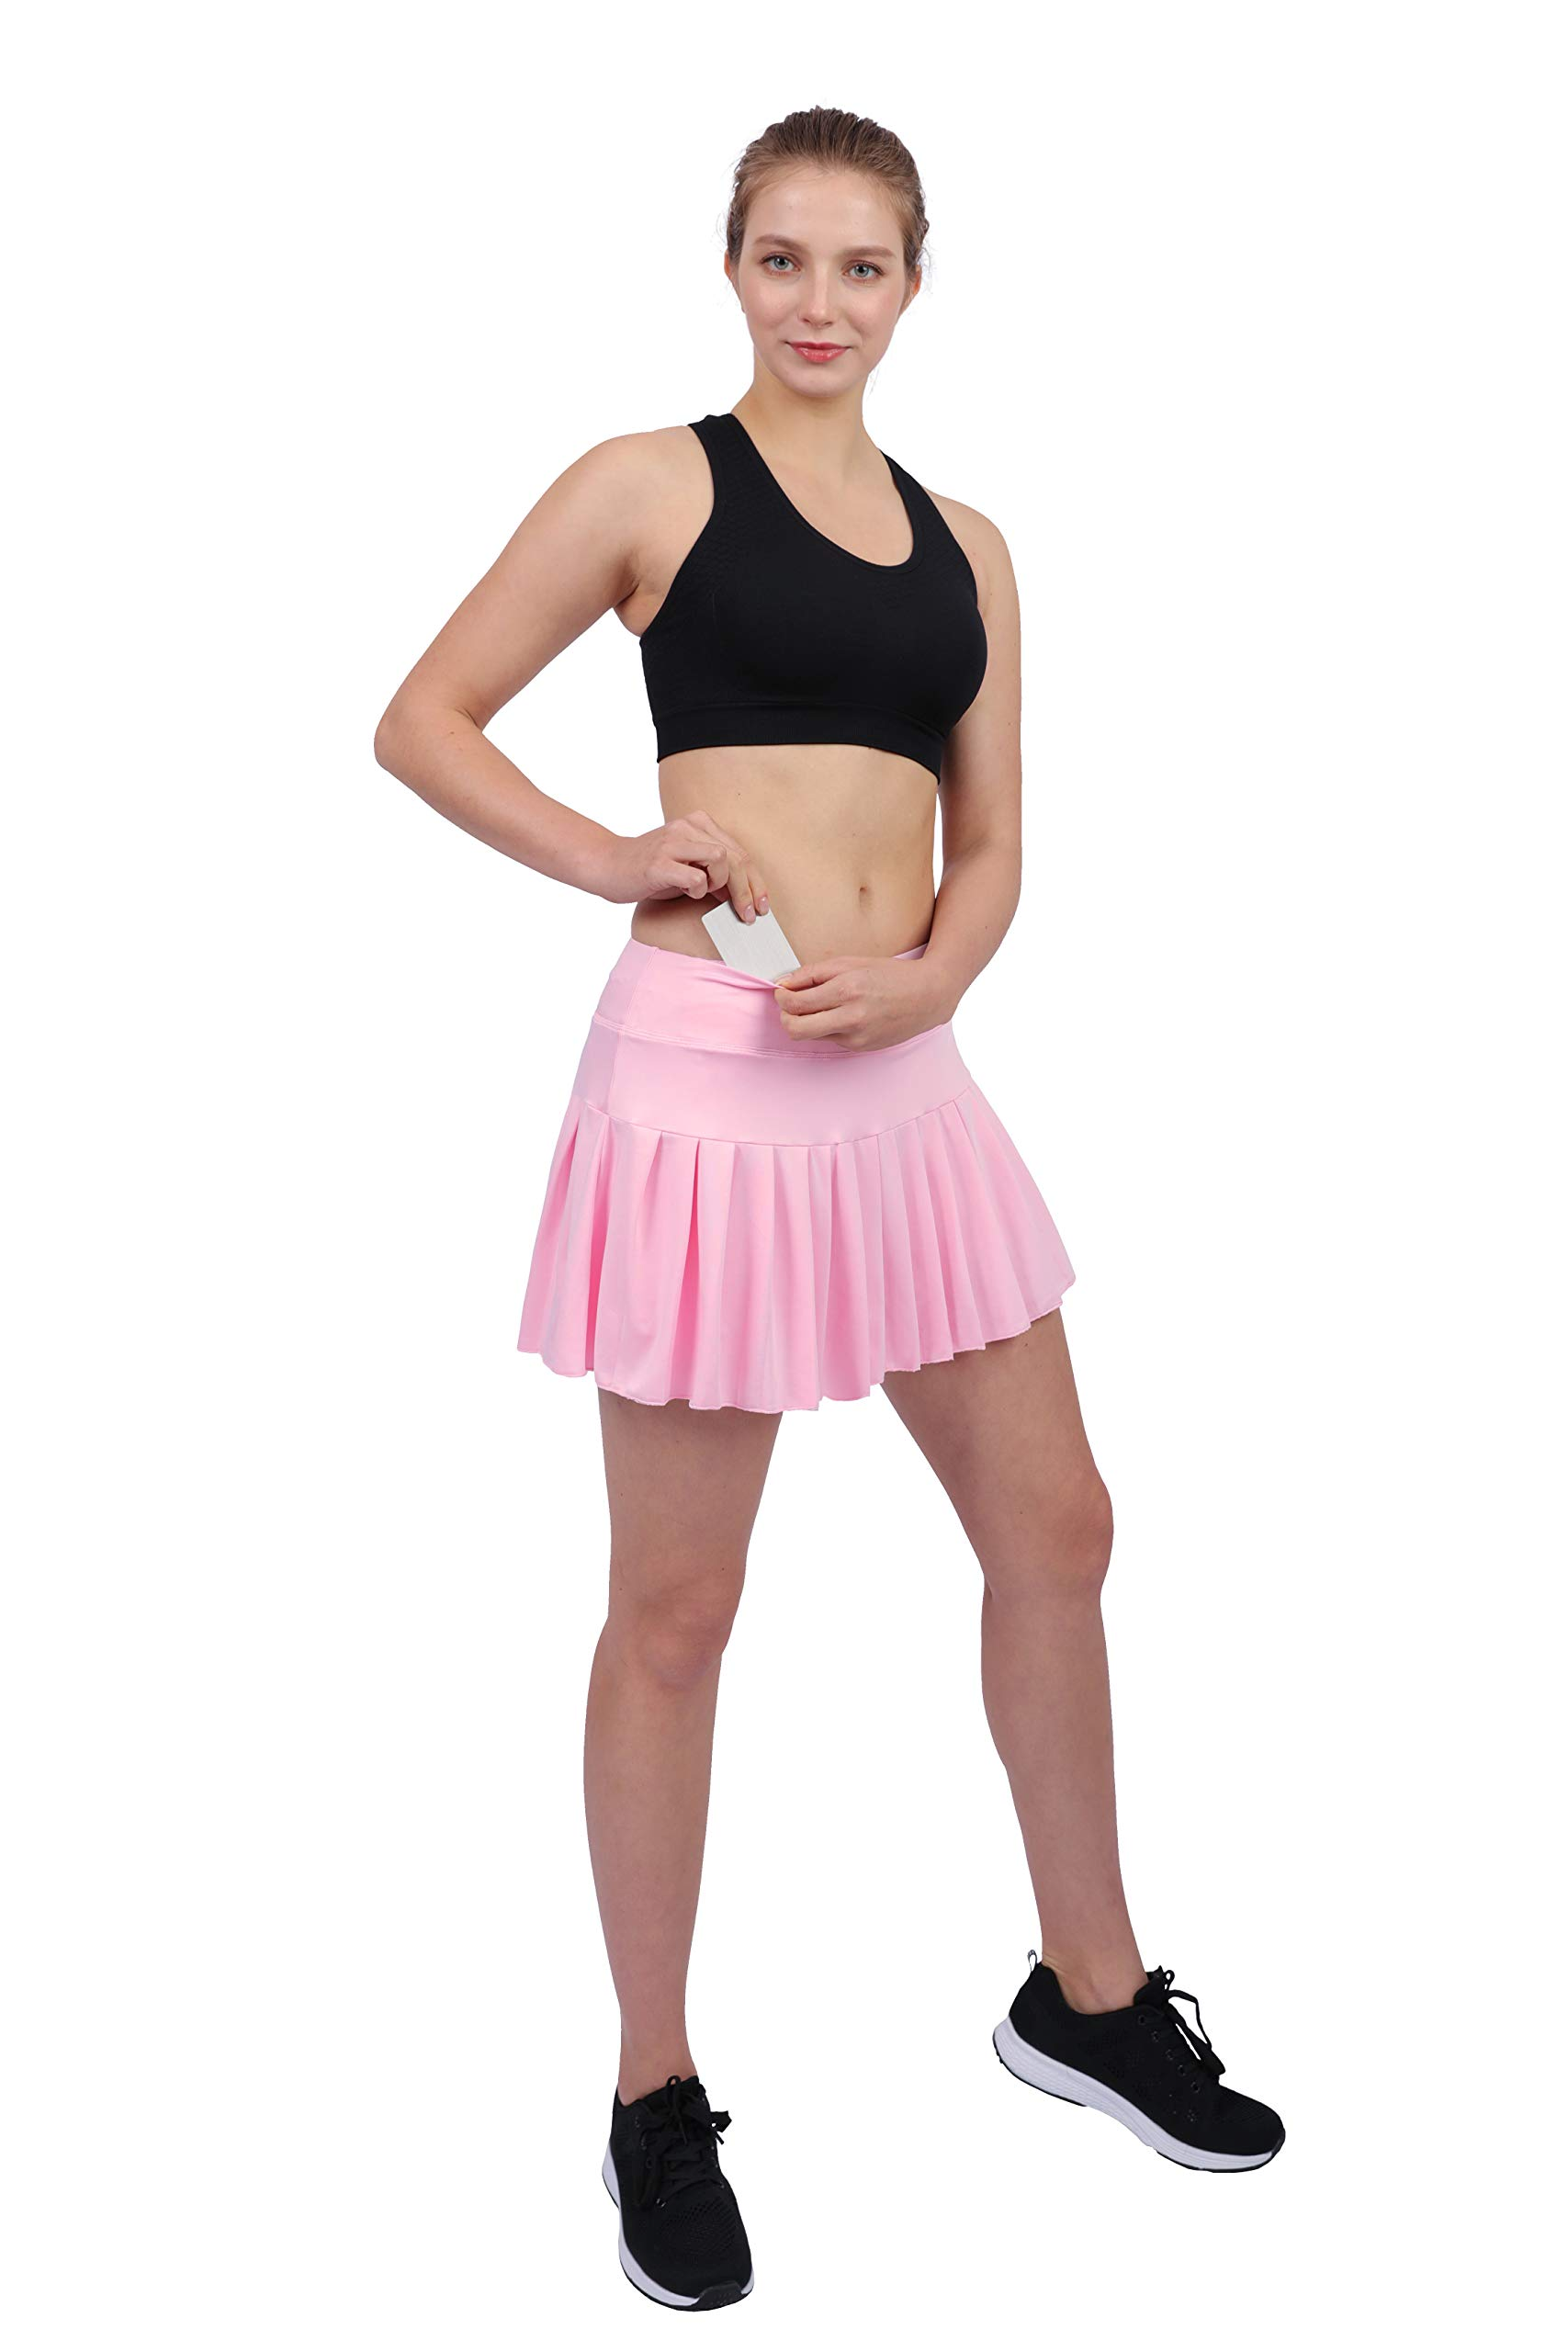 Womens Tennis Pleated Skorts Golf Workout High Waist Biult in Skirts Sports Active Wear with Pockets Light Pink by HonourSex